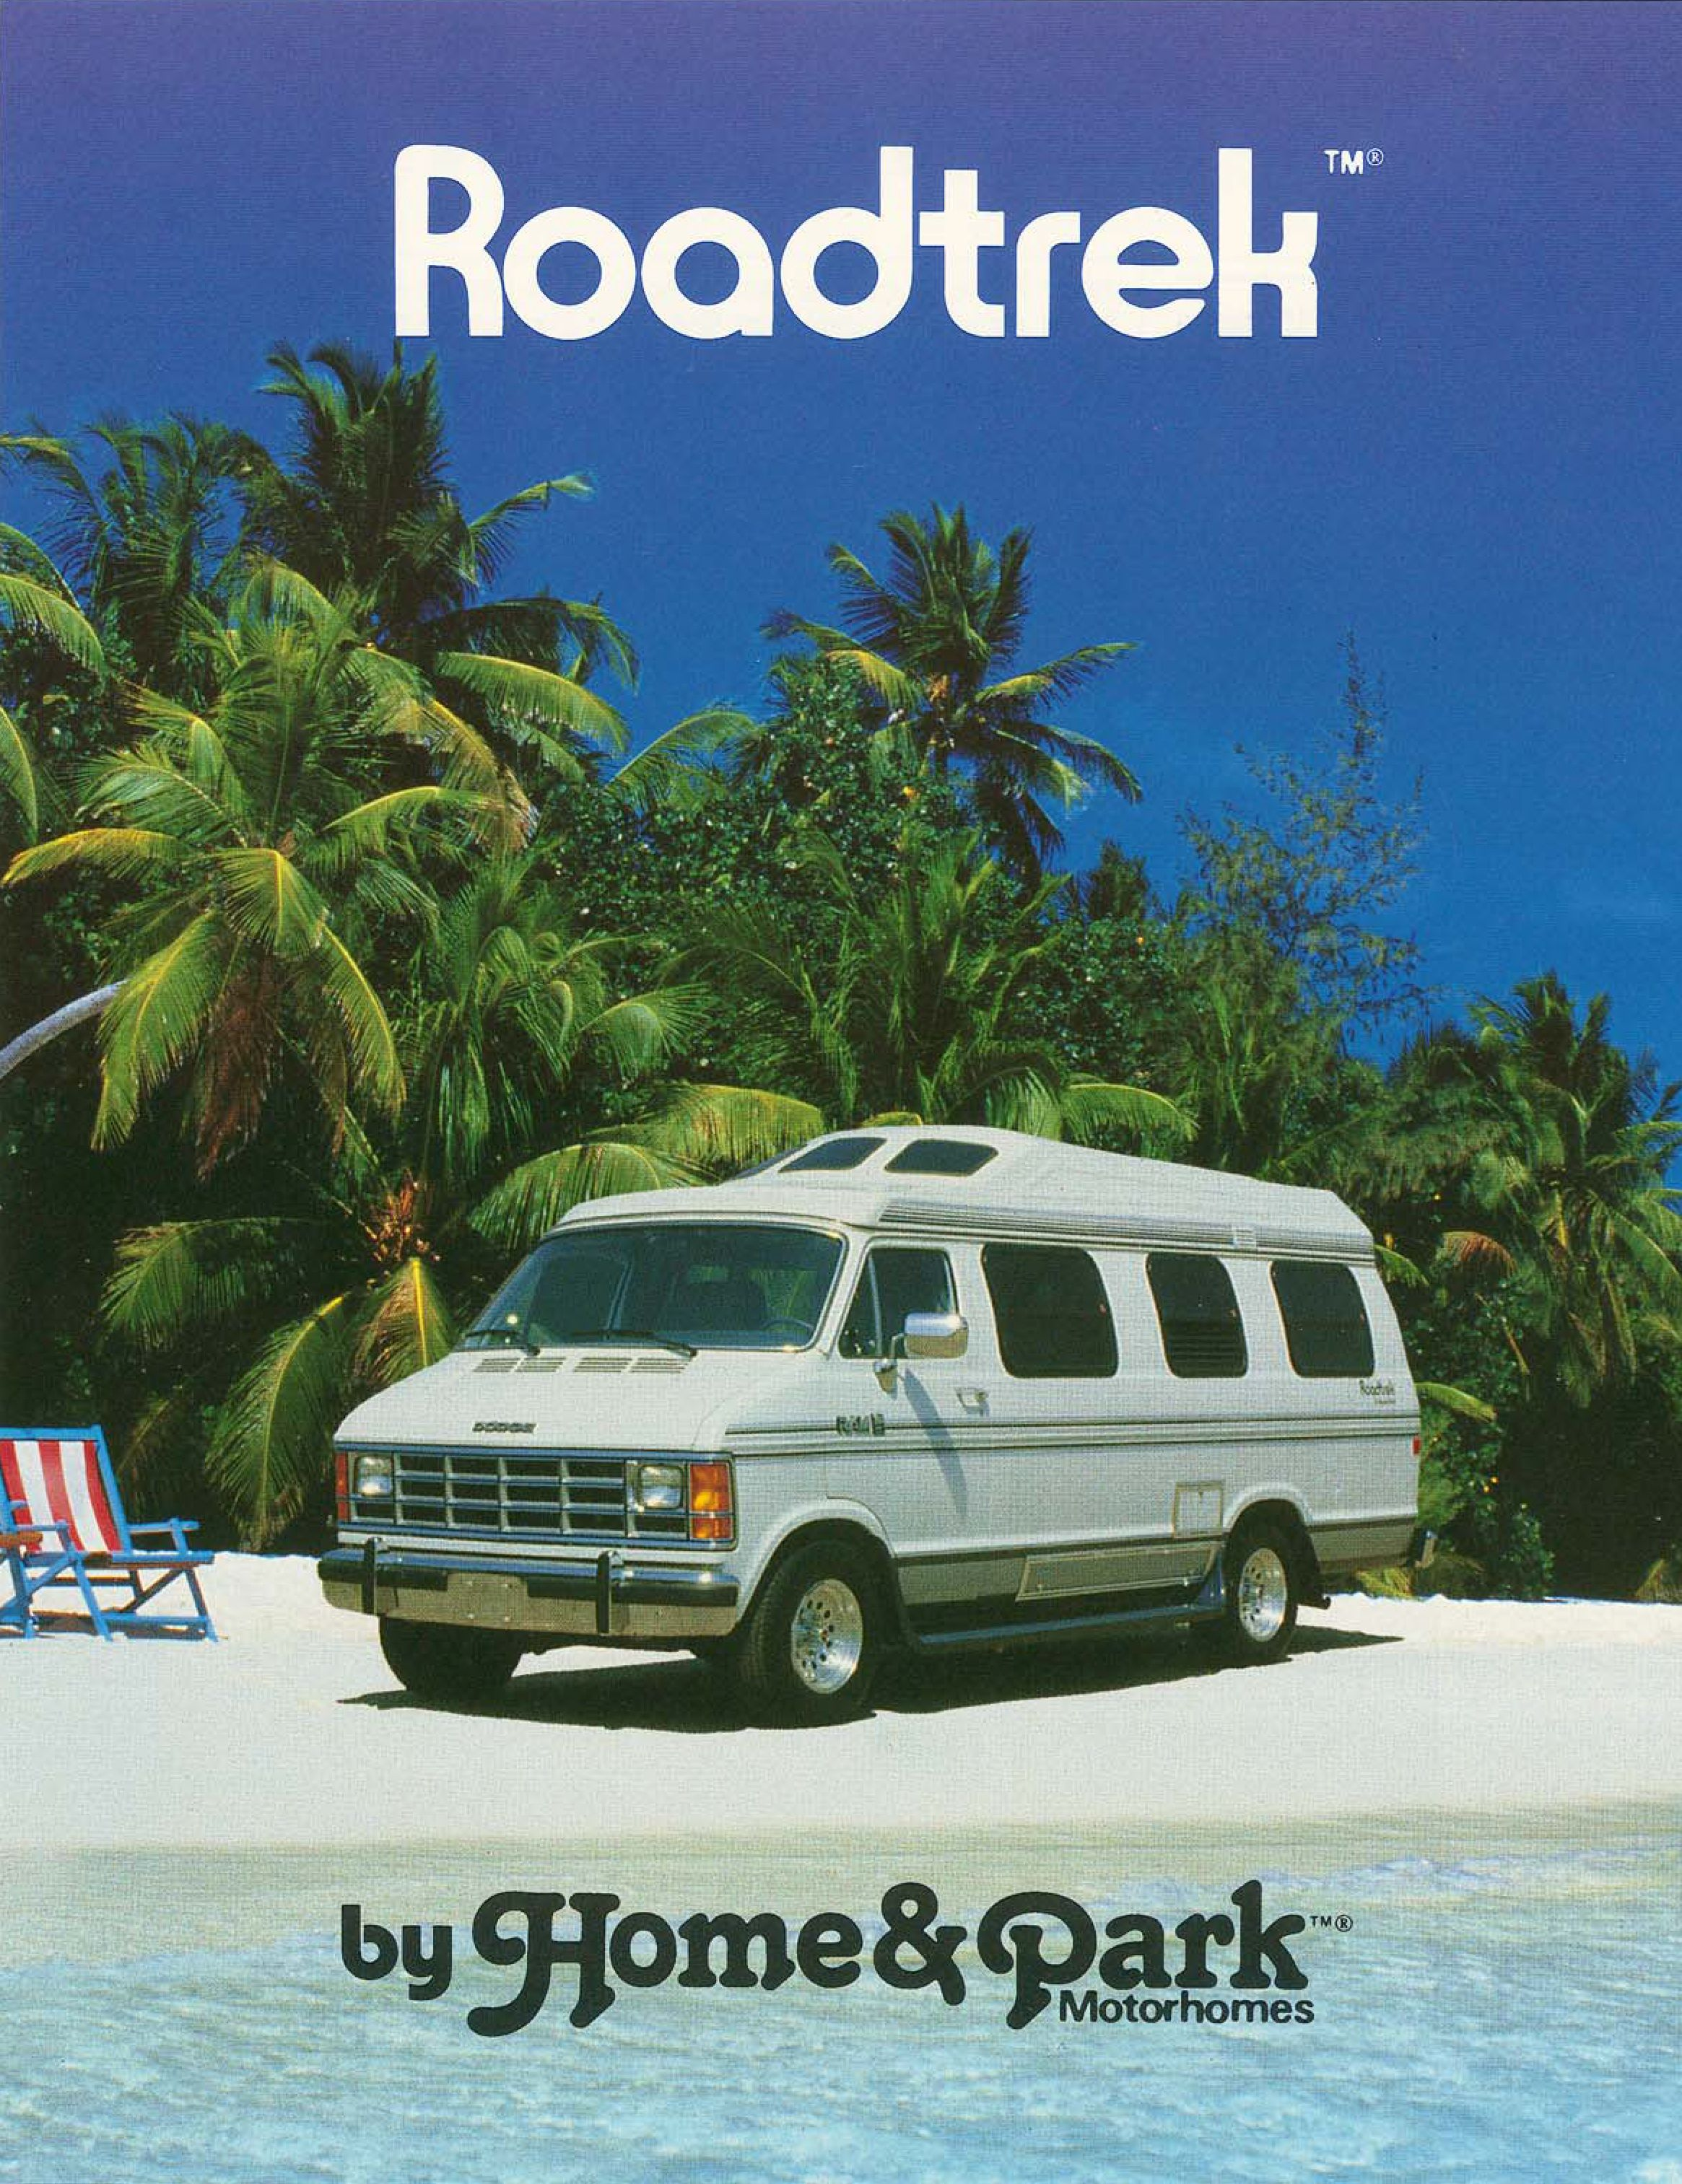 A Classic 1991 Roadtrek Home Park Motorhome On Pristine Beach There Are Very Few Things Better Than This Picture